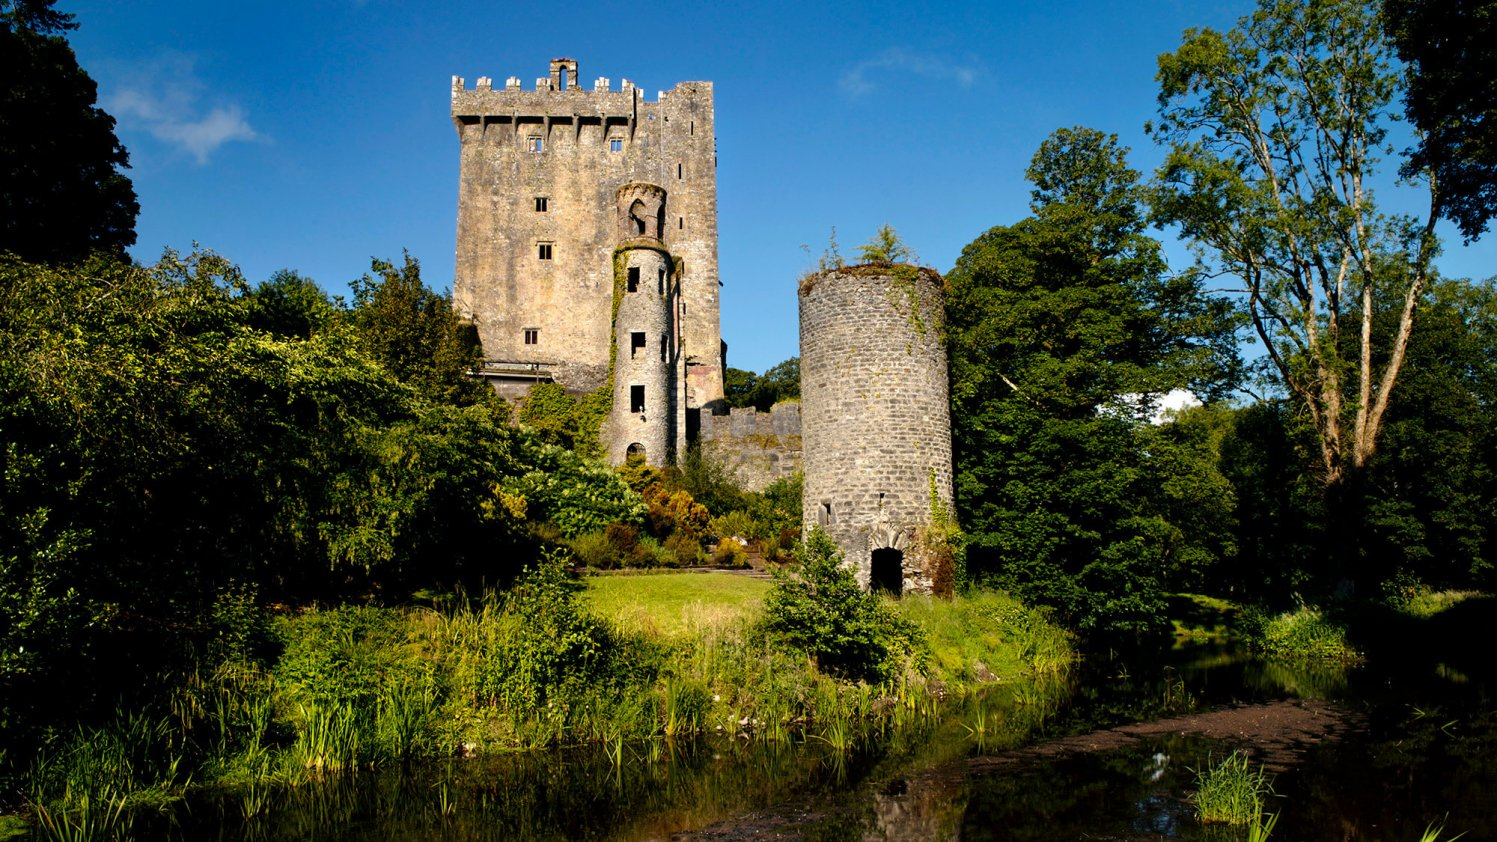 River view of Blarney Castle Gardens and Tower